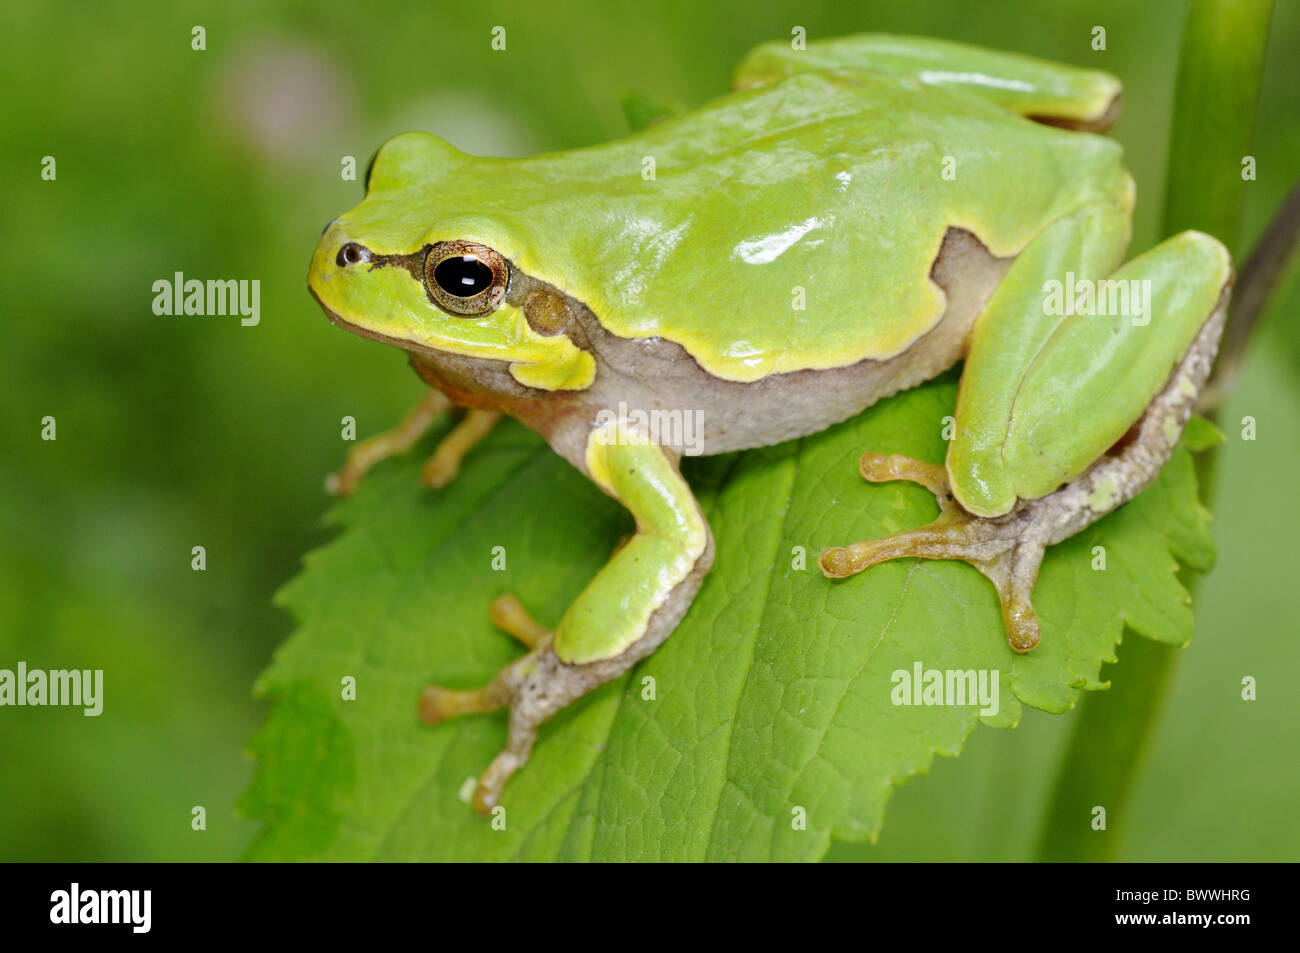 Pictures of amphibians for kids